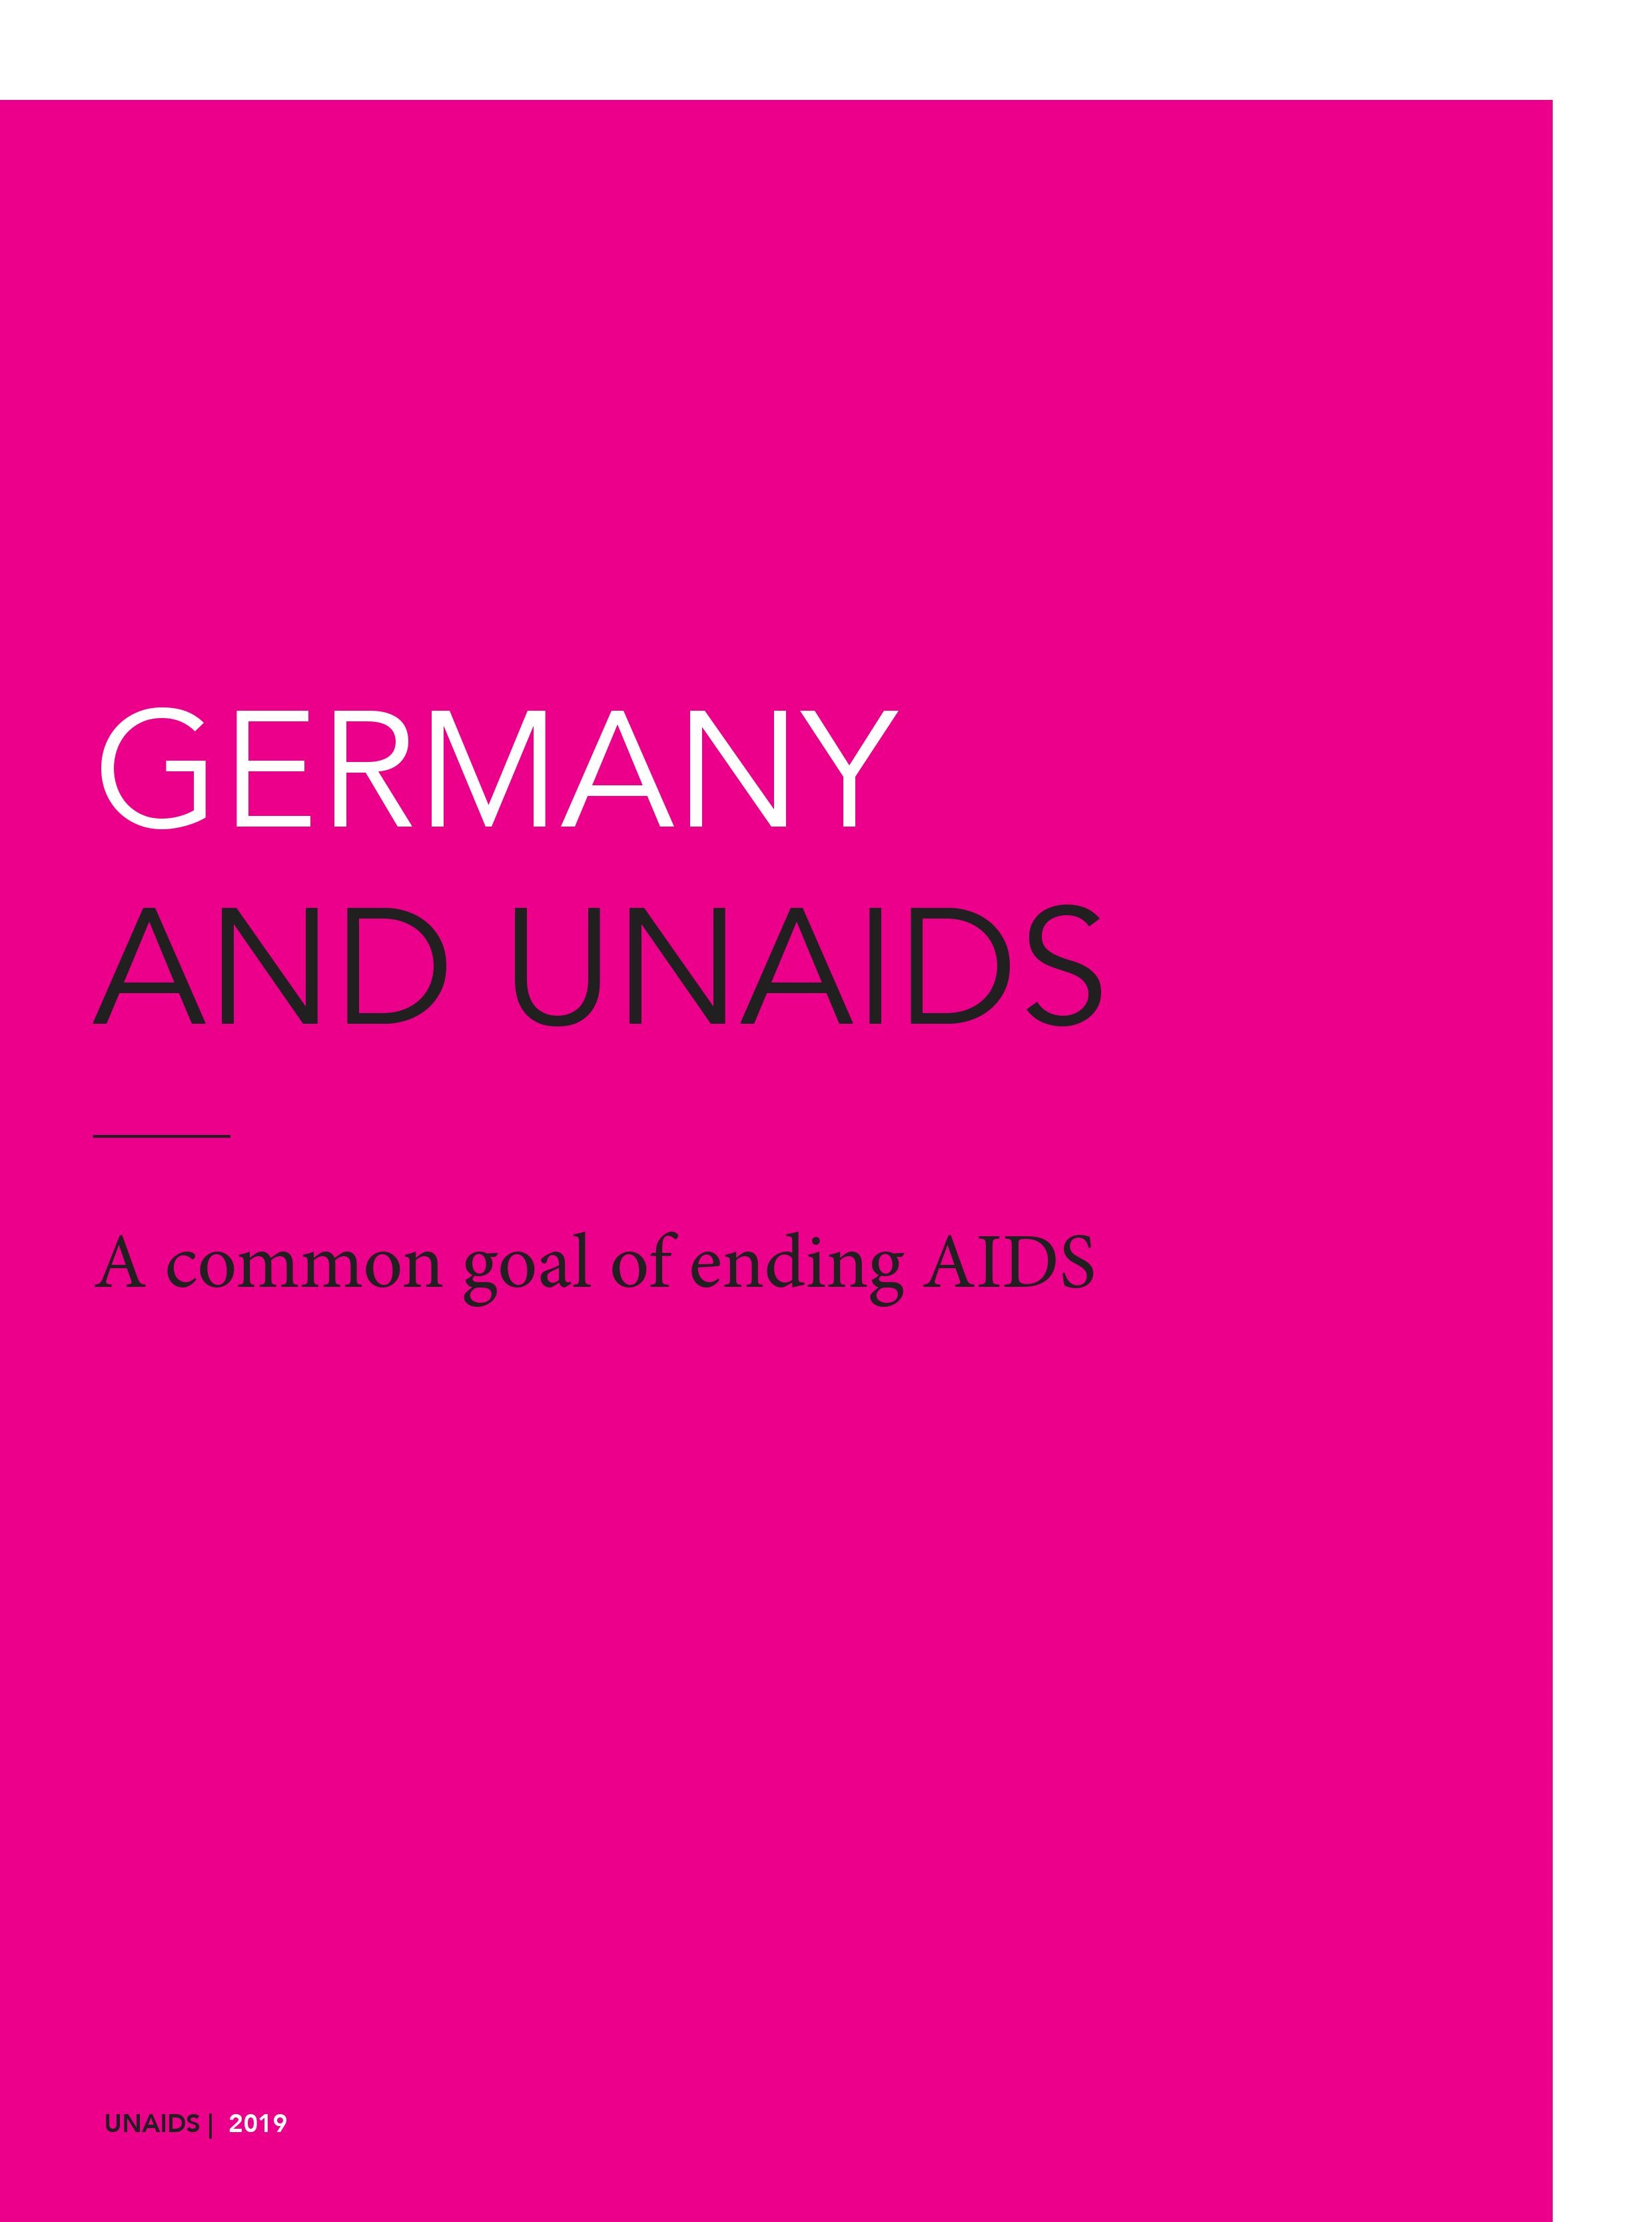 Germany and UNAIDS